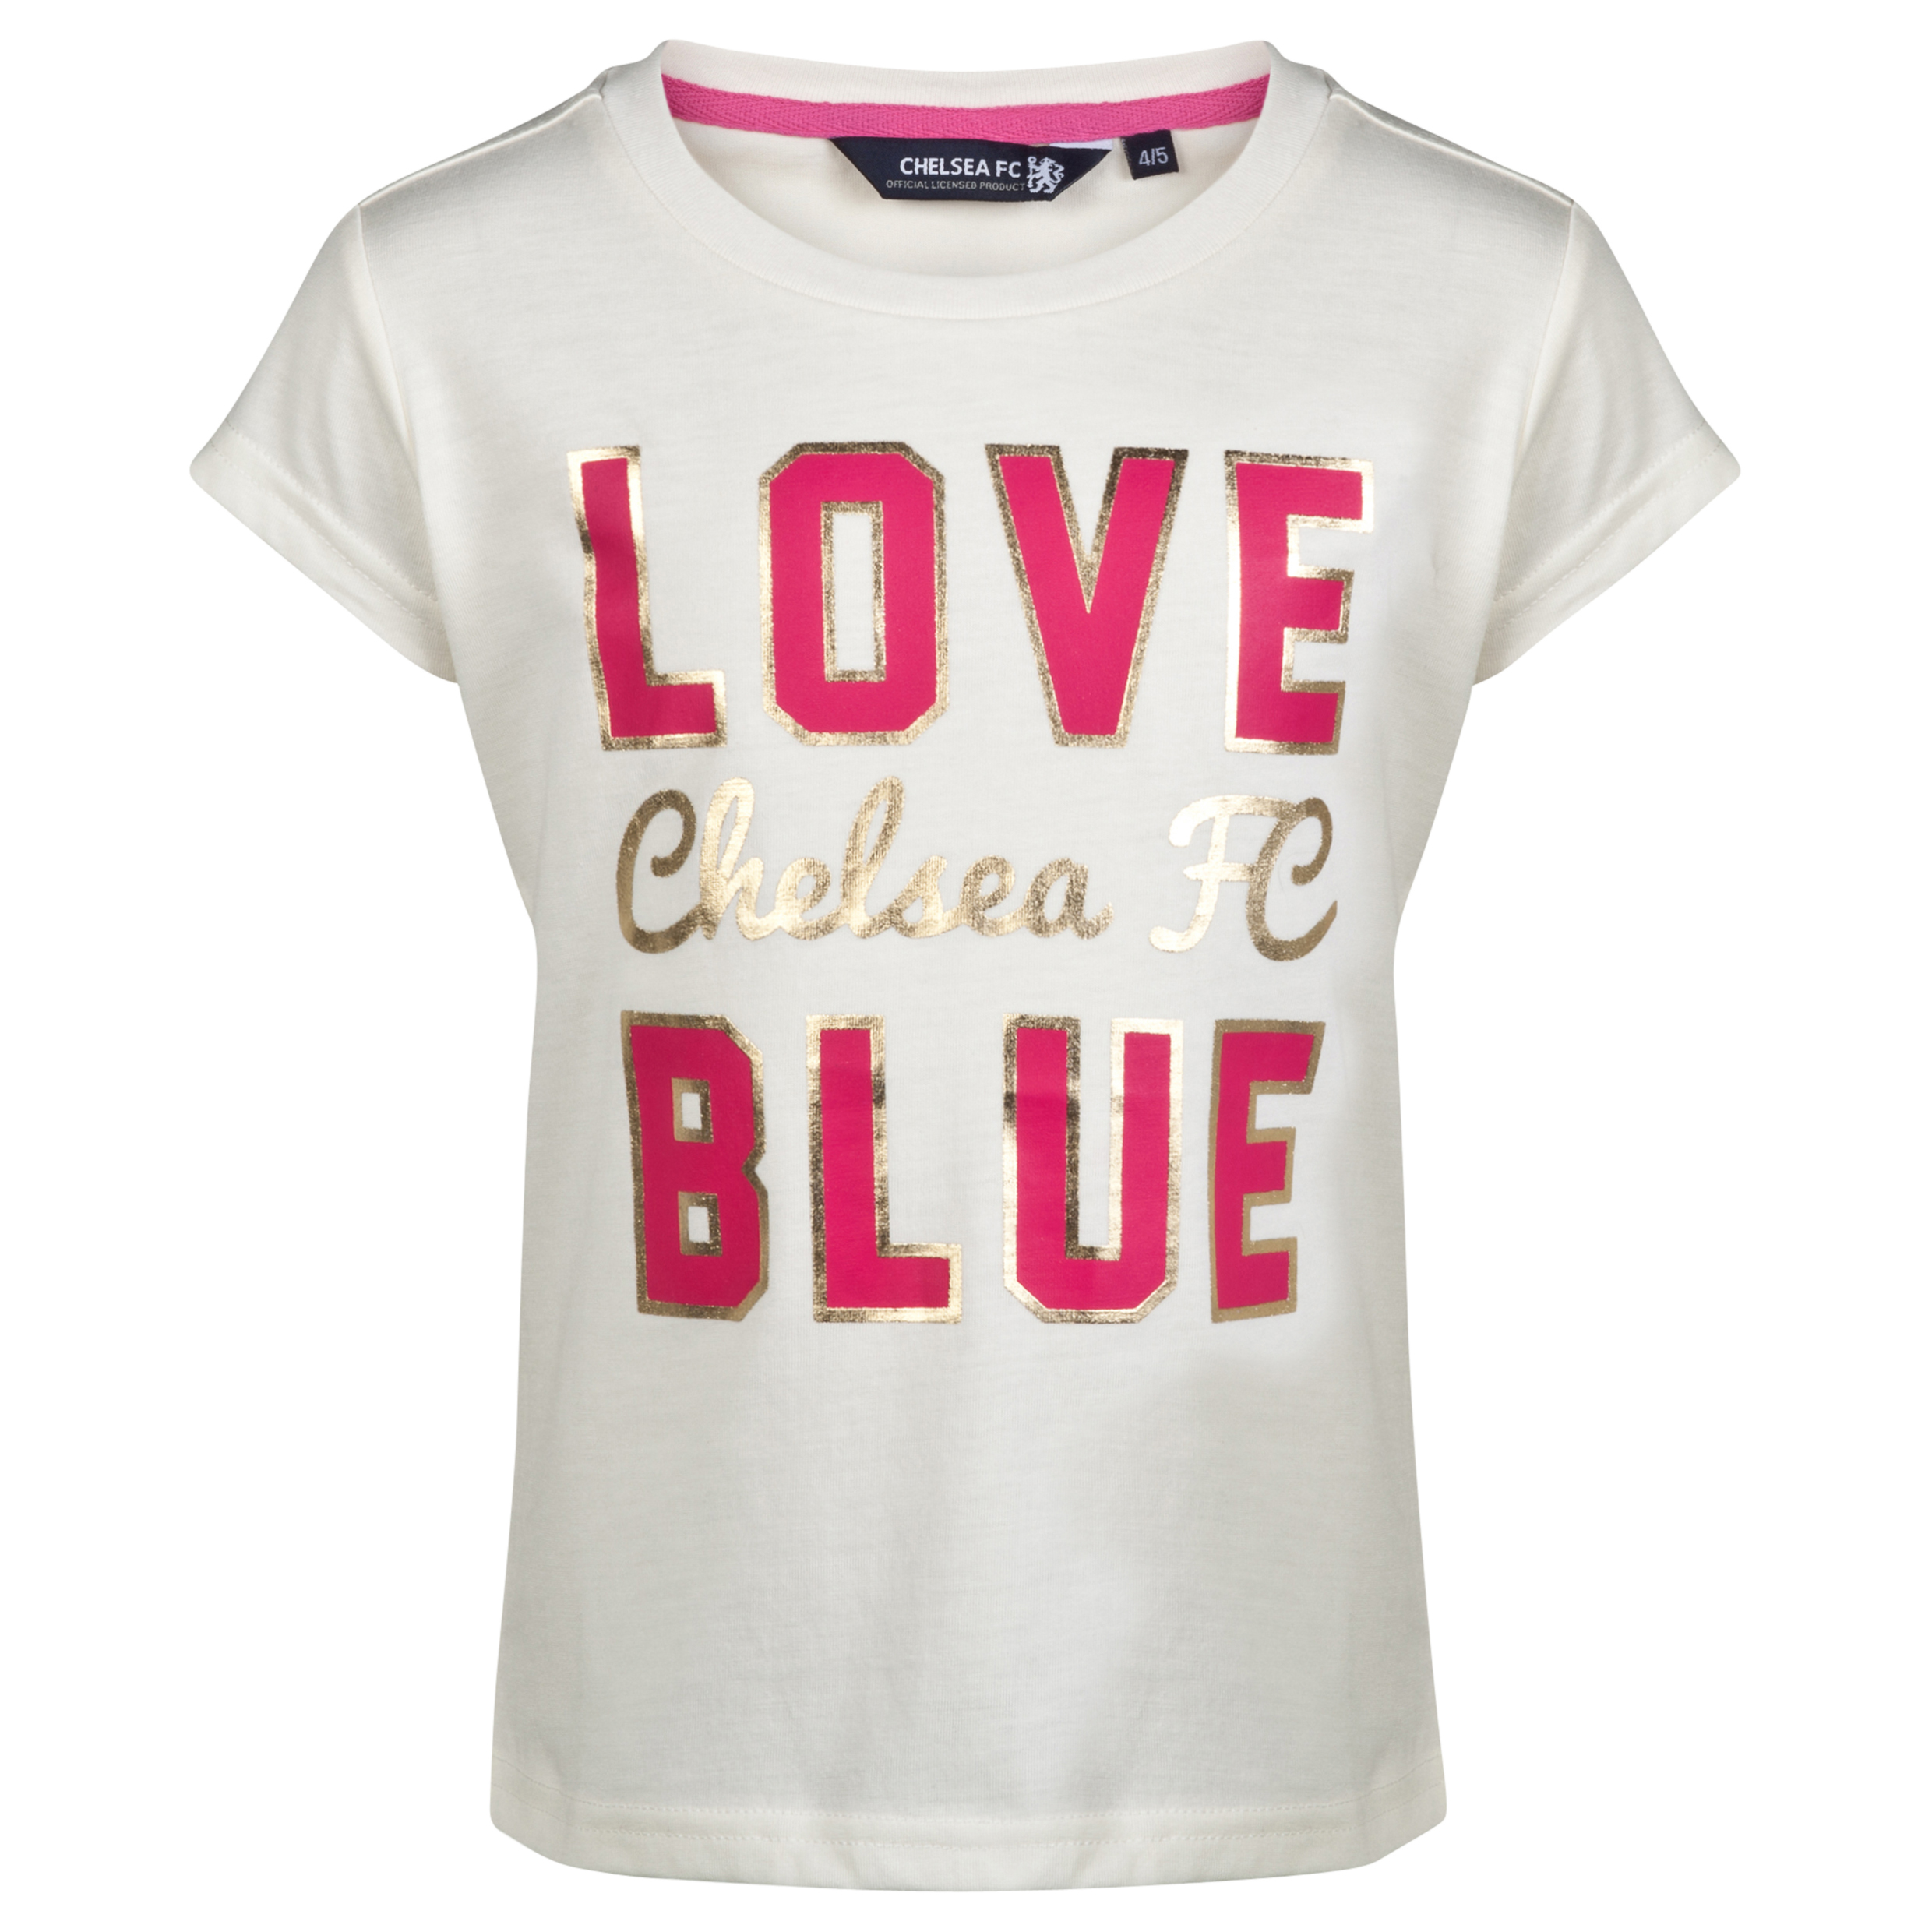 Chelsea Graphic T-Shirt - Infant Girls White